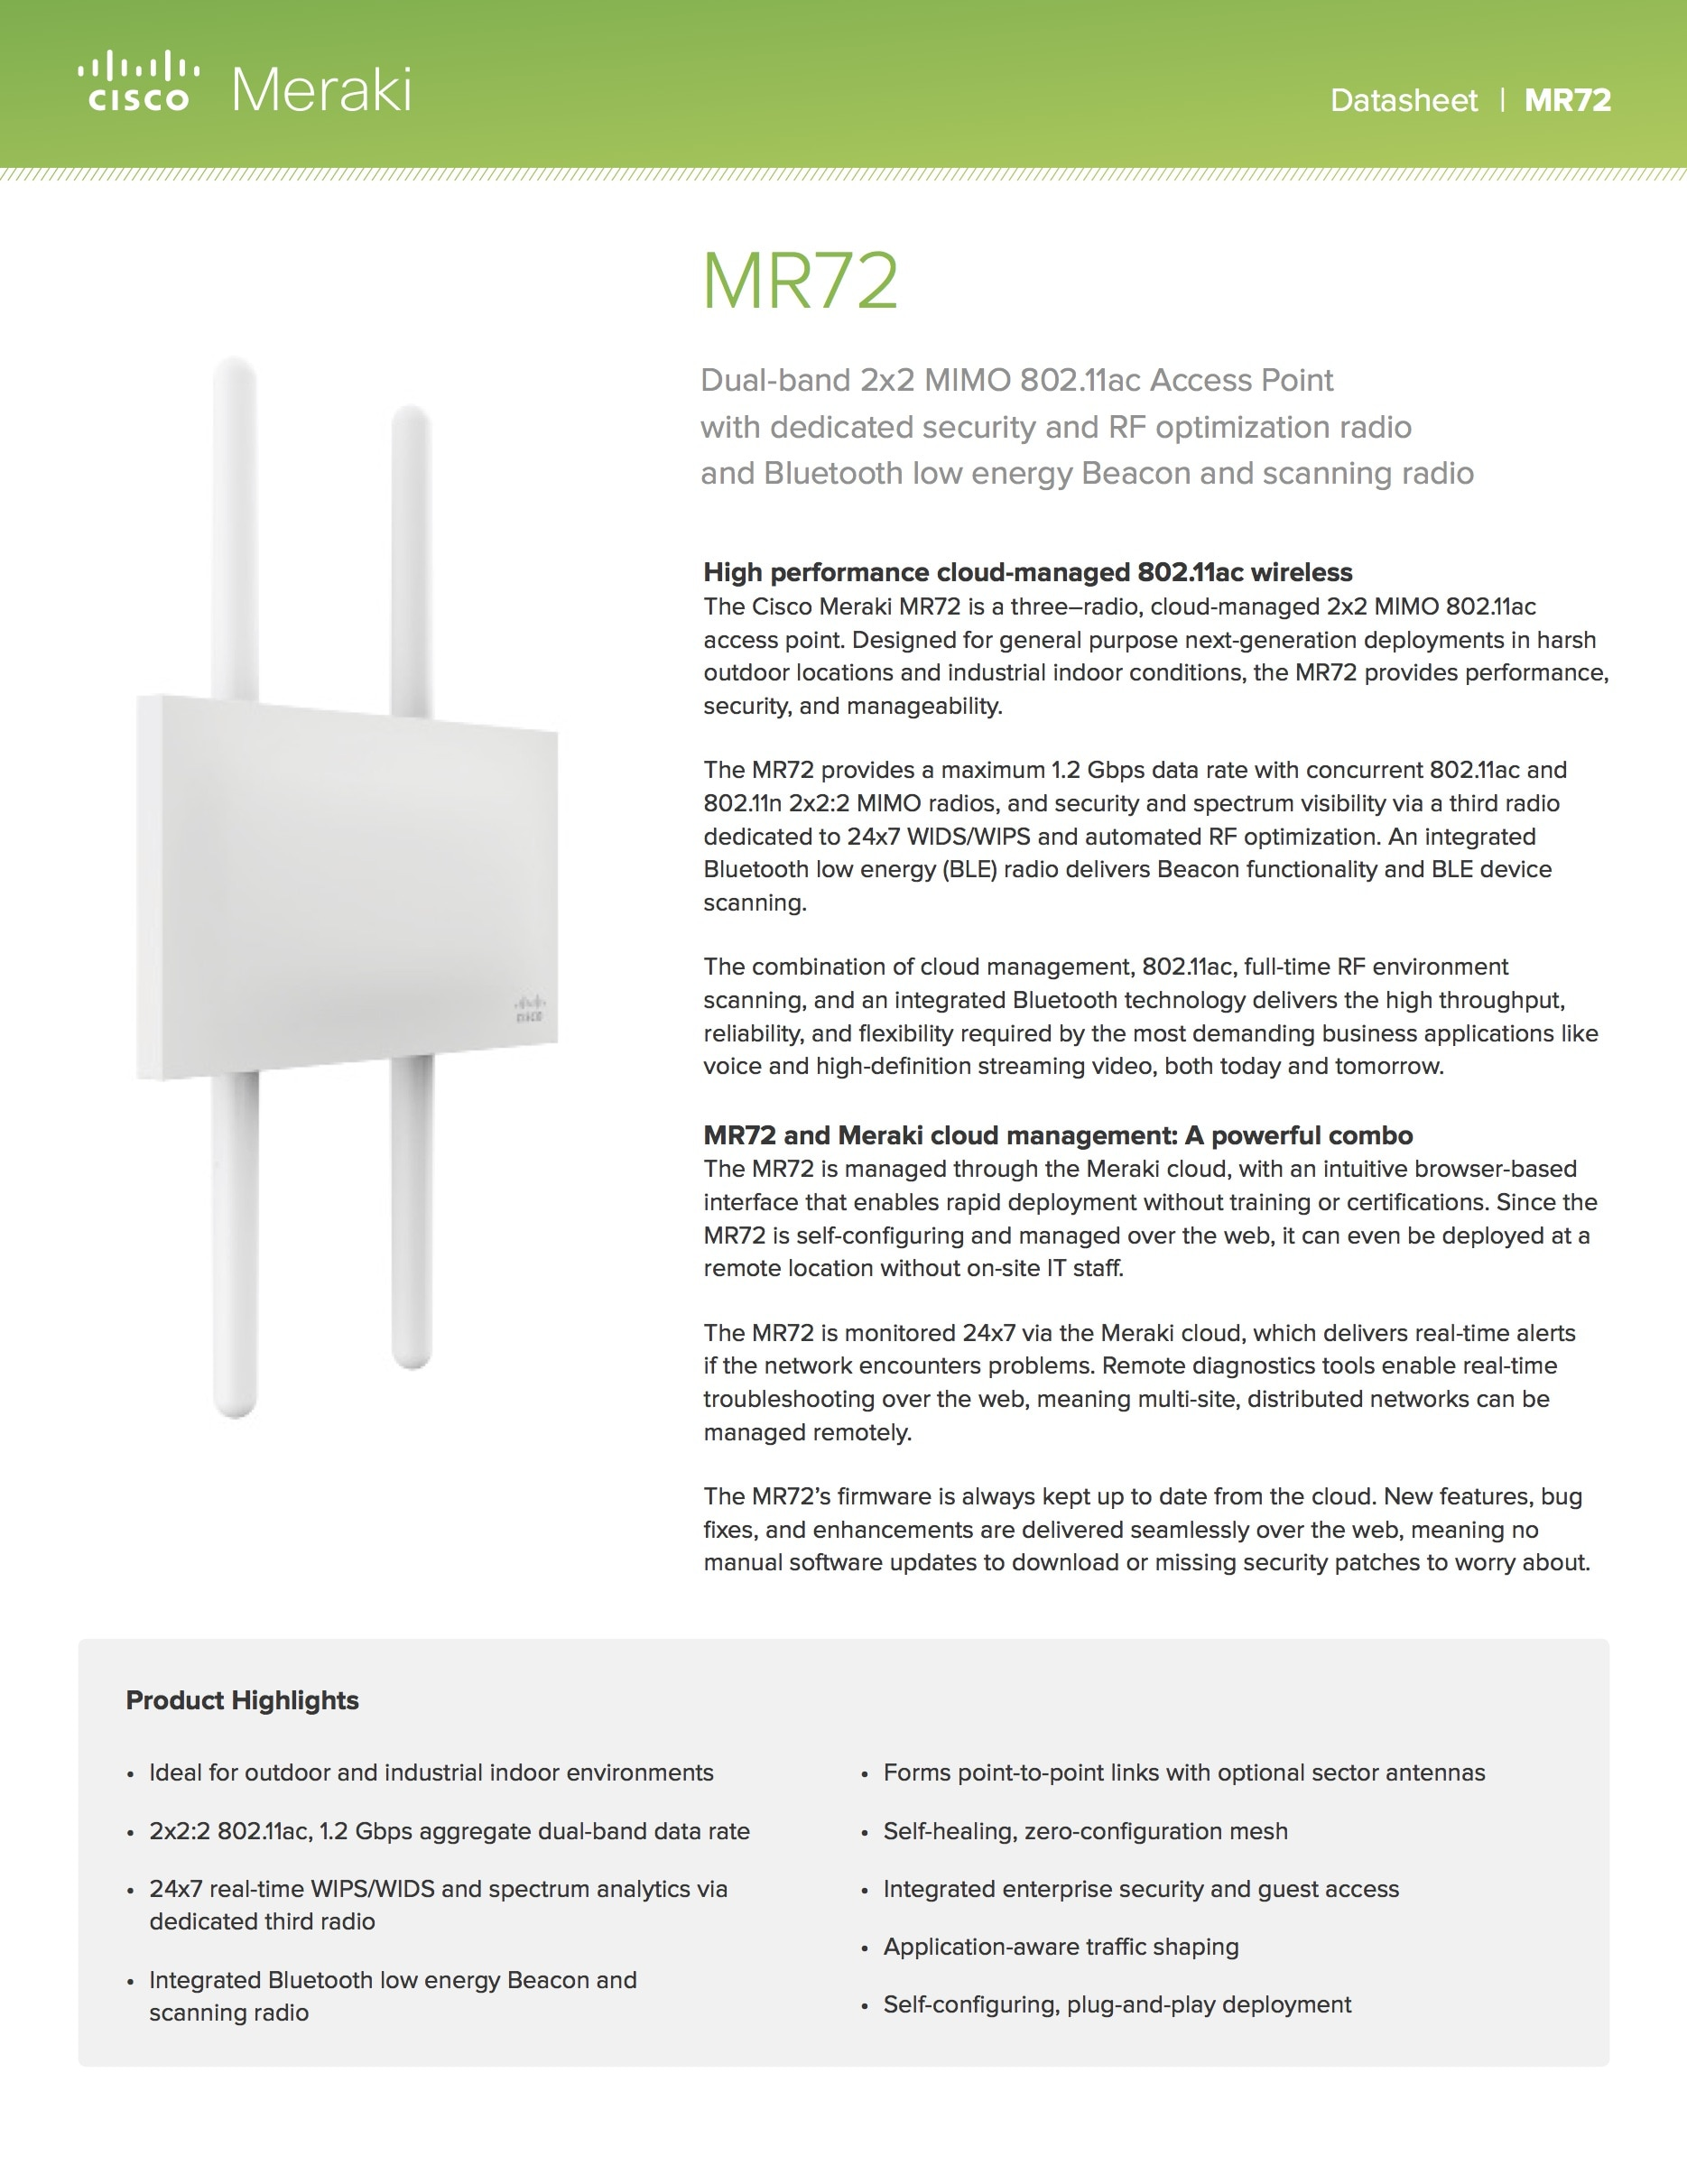 MR72 Datasheet